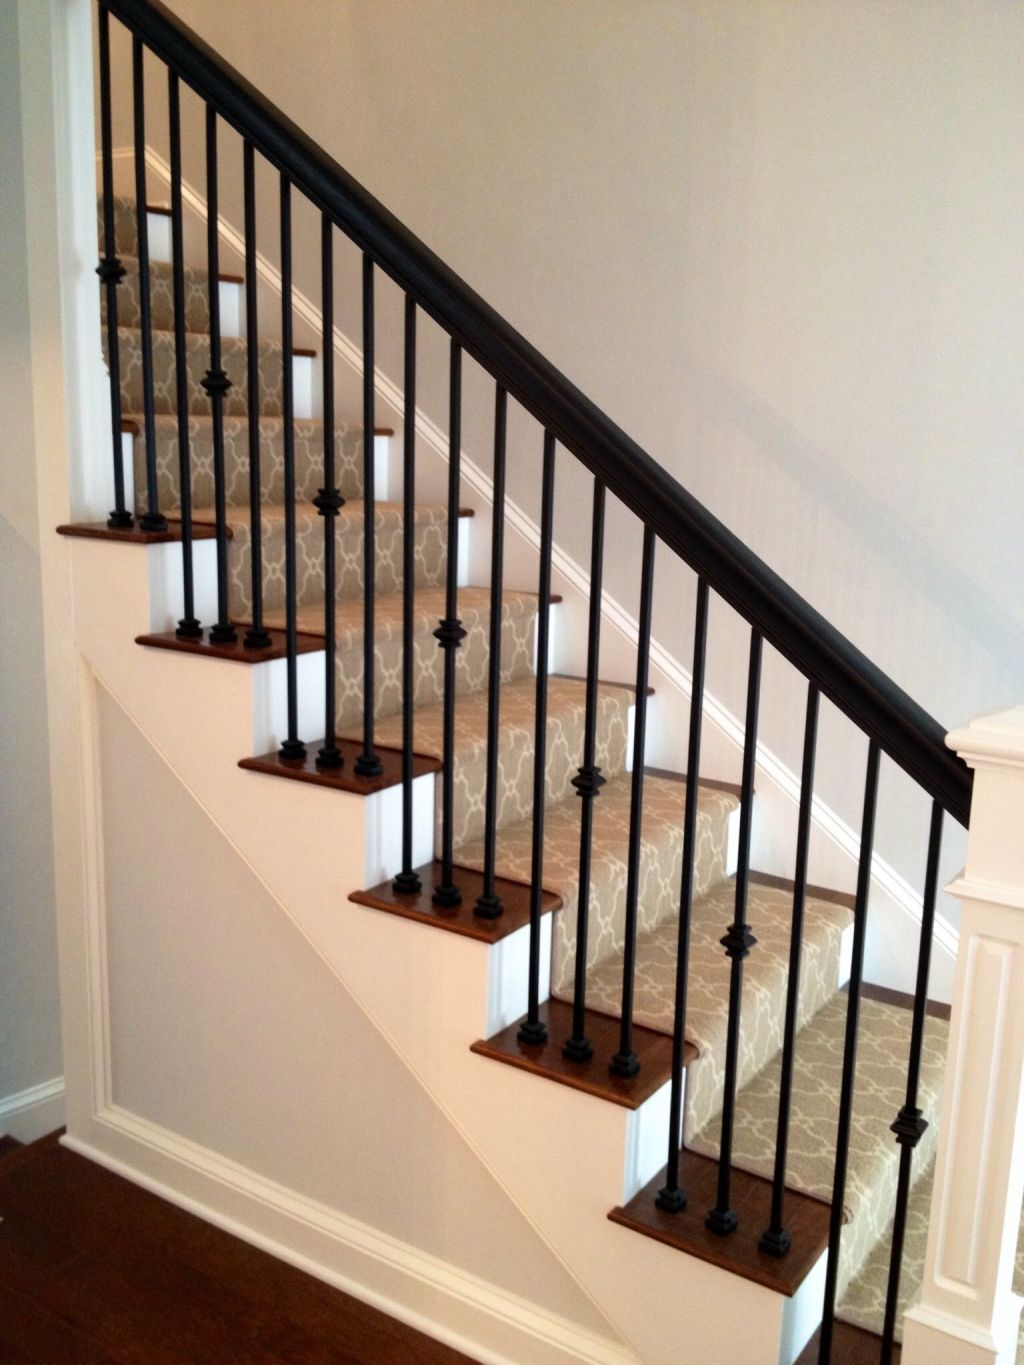 Pull Down Attic Stairs Prices Stair Railing Design Metal Stair Railing Iron Stair Railing